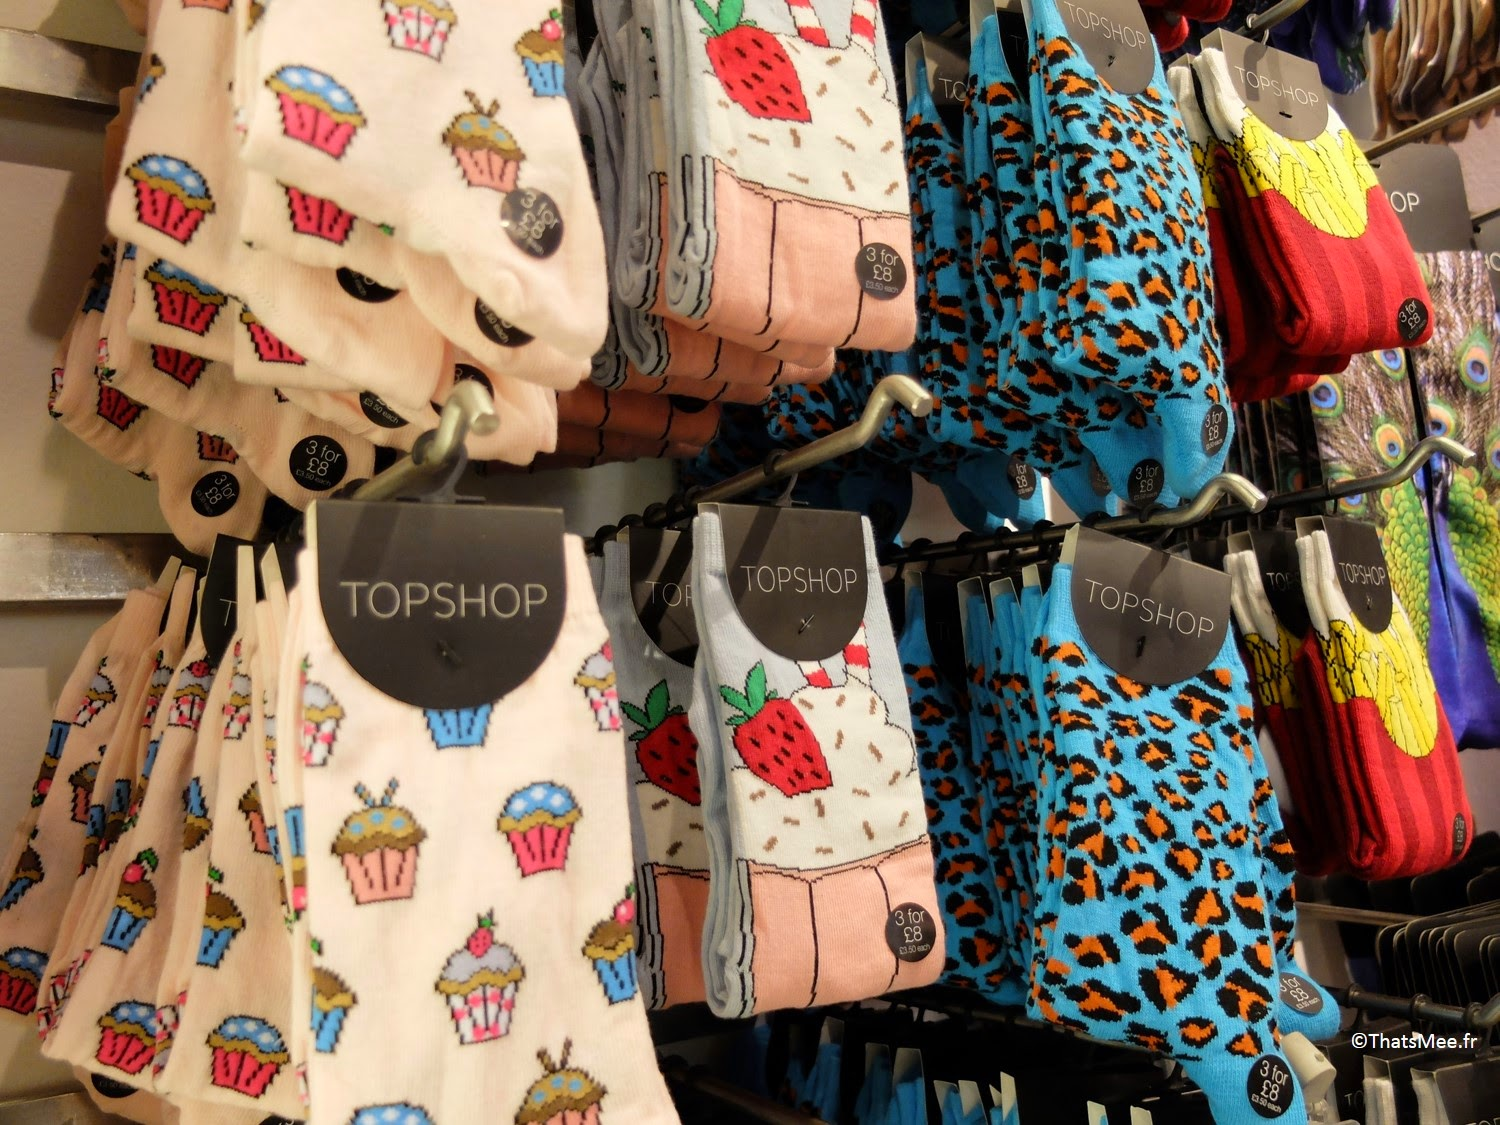 Chaussettes ridicool cupcakes, chaussettes graou bleu, Topshop Londres Picadilly Oxford Street